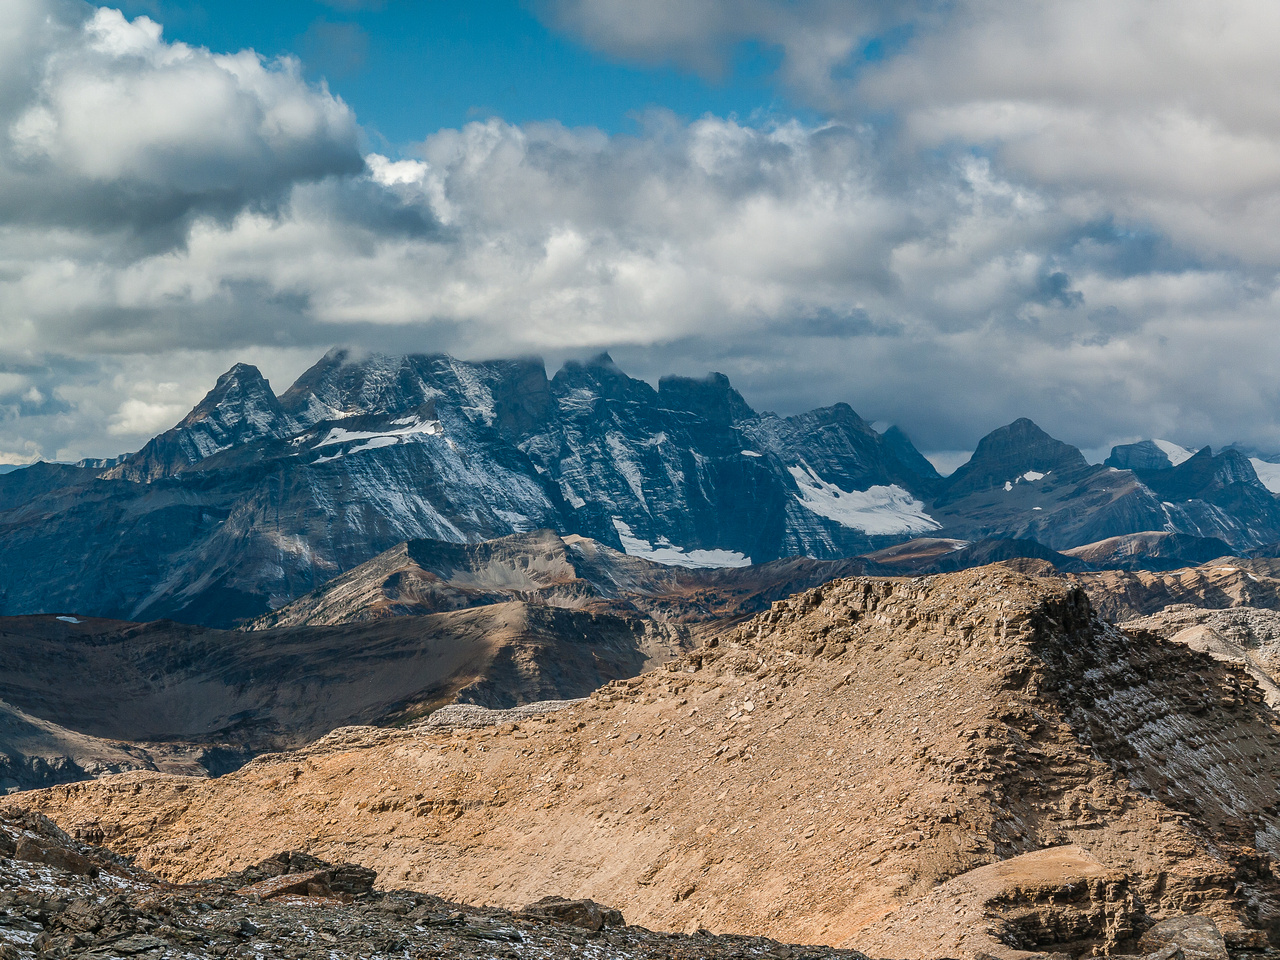 Looking over Mount Sharp towards the Goodsirs buried in cloud.